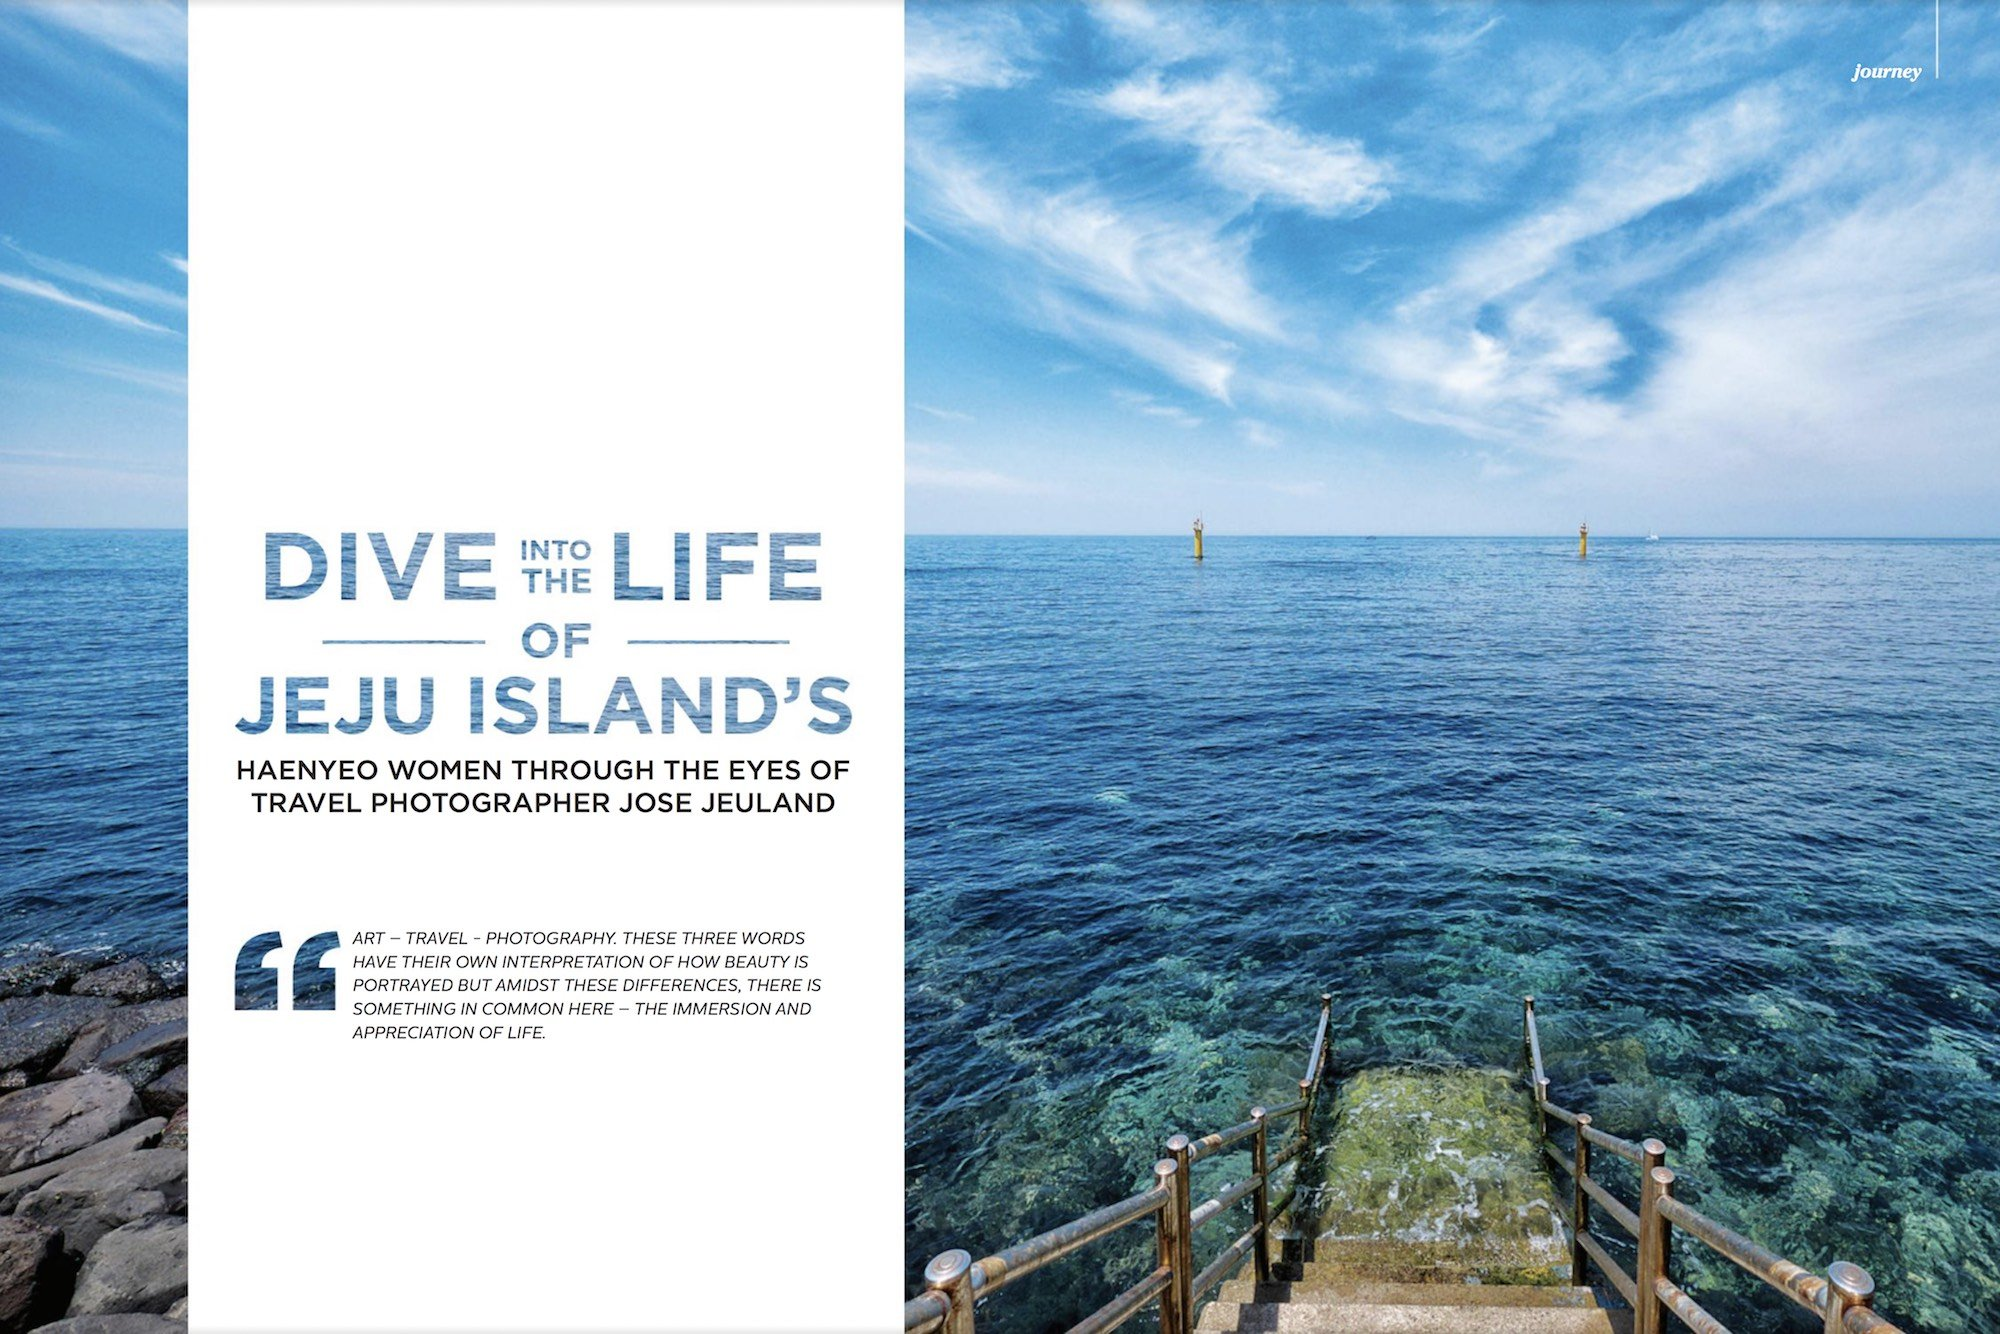 Tropical, Life, Magazine, Jose, Jeuland, Haenyeo, reportage, jeju, south, Korea, photography, photo, photographer, women, diver,